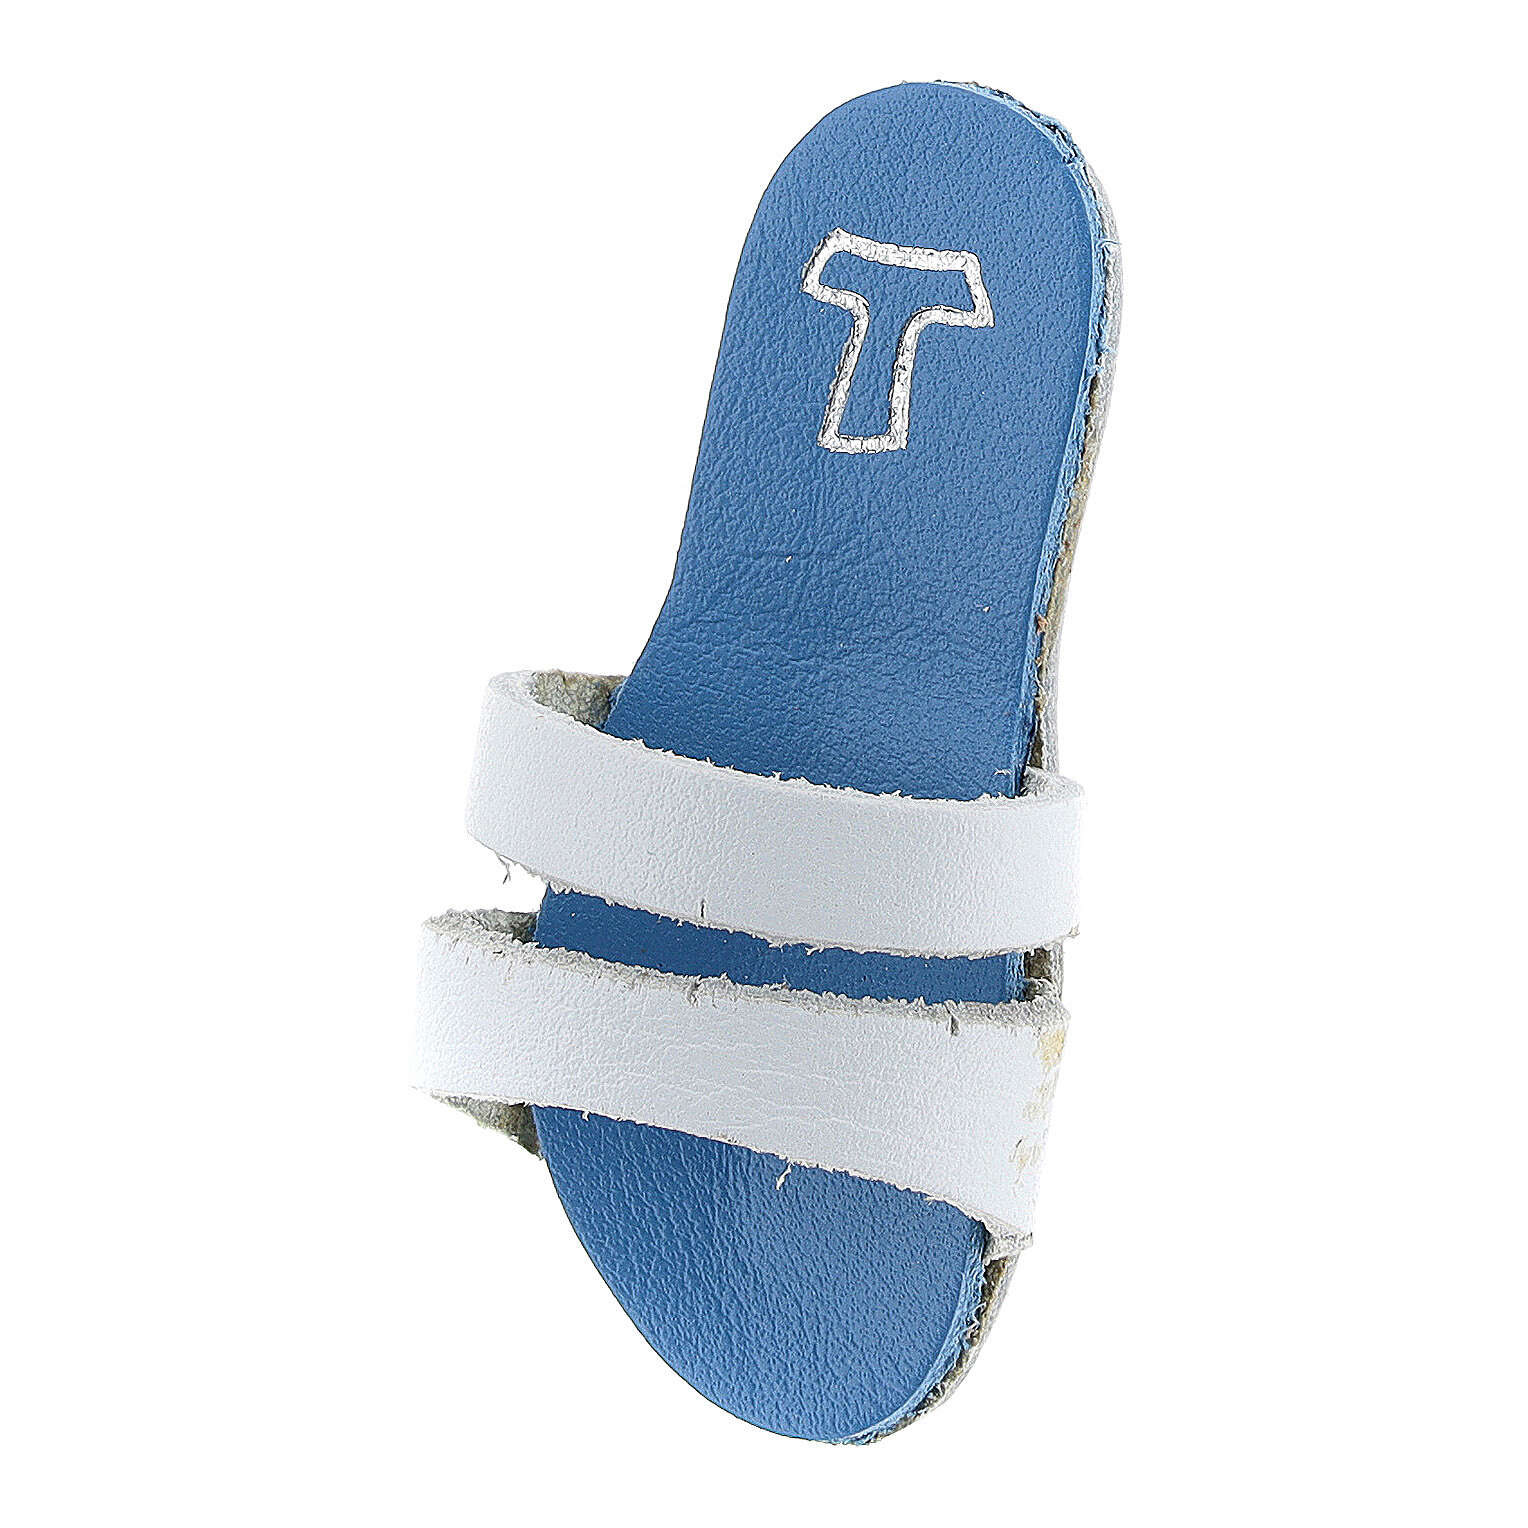 Franciscan sandal magnet blue sole Tau 2 1/2 in real leather 3